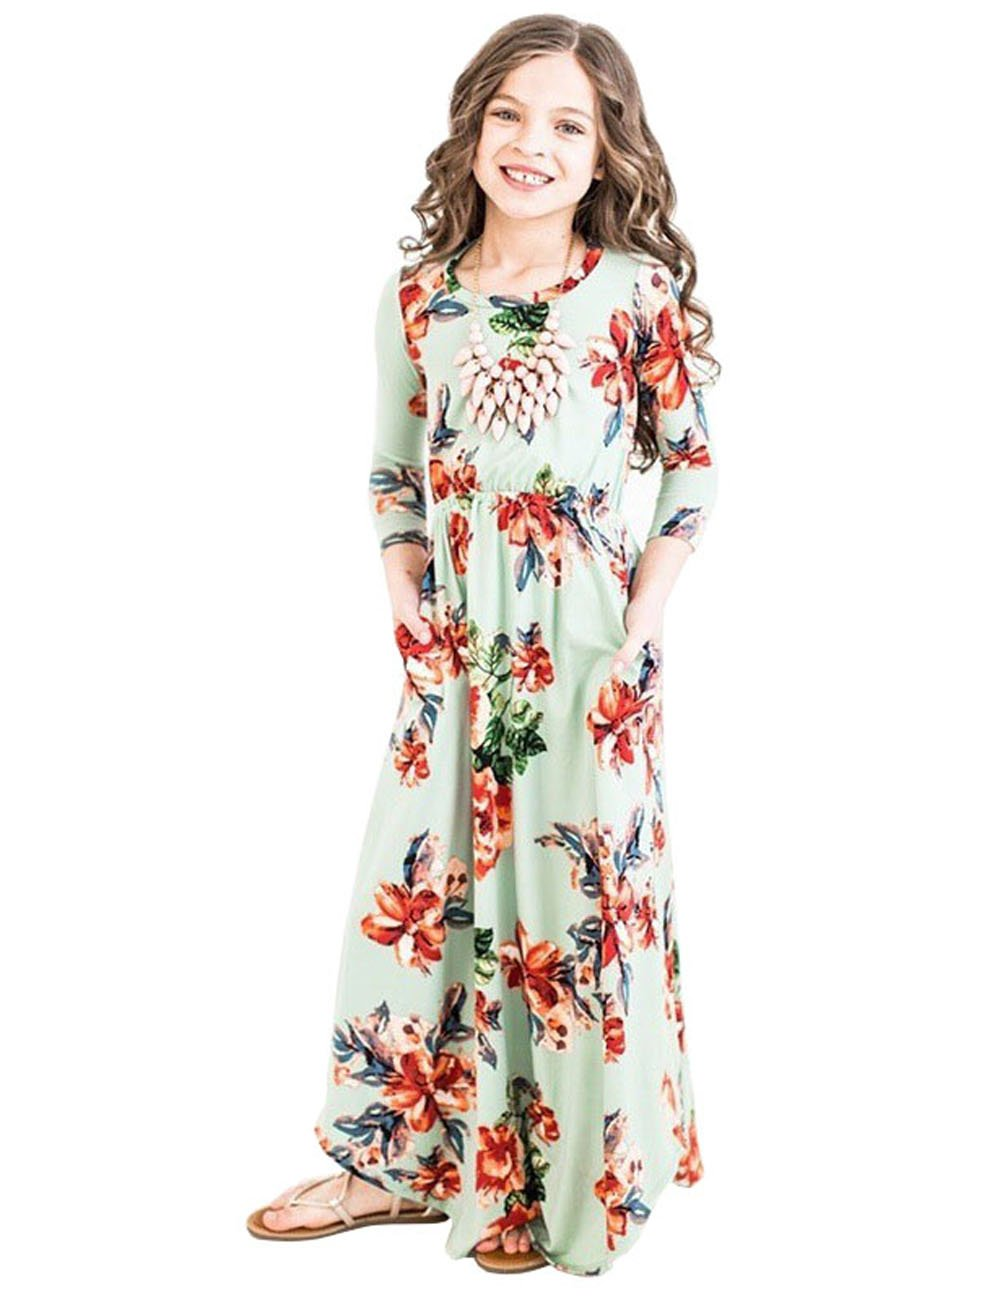 JYH Girls Maxi Dress, Floral Flared Sewing Pocket Three-Quarter Sleeves Long Dress Size 5-12 by JYH